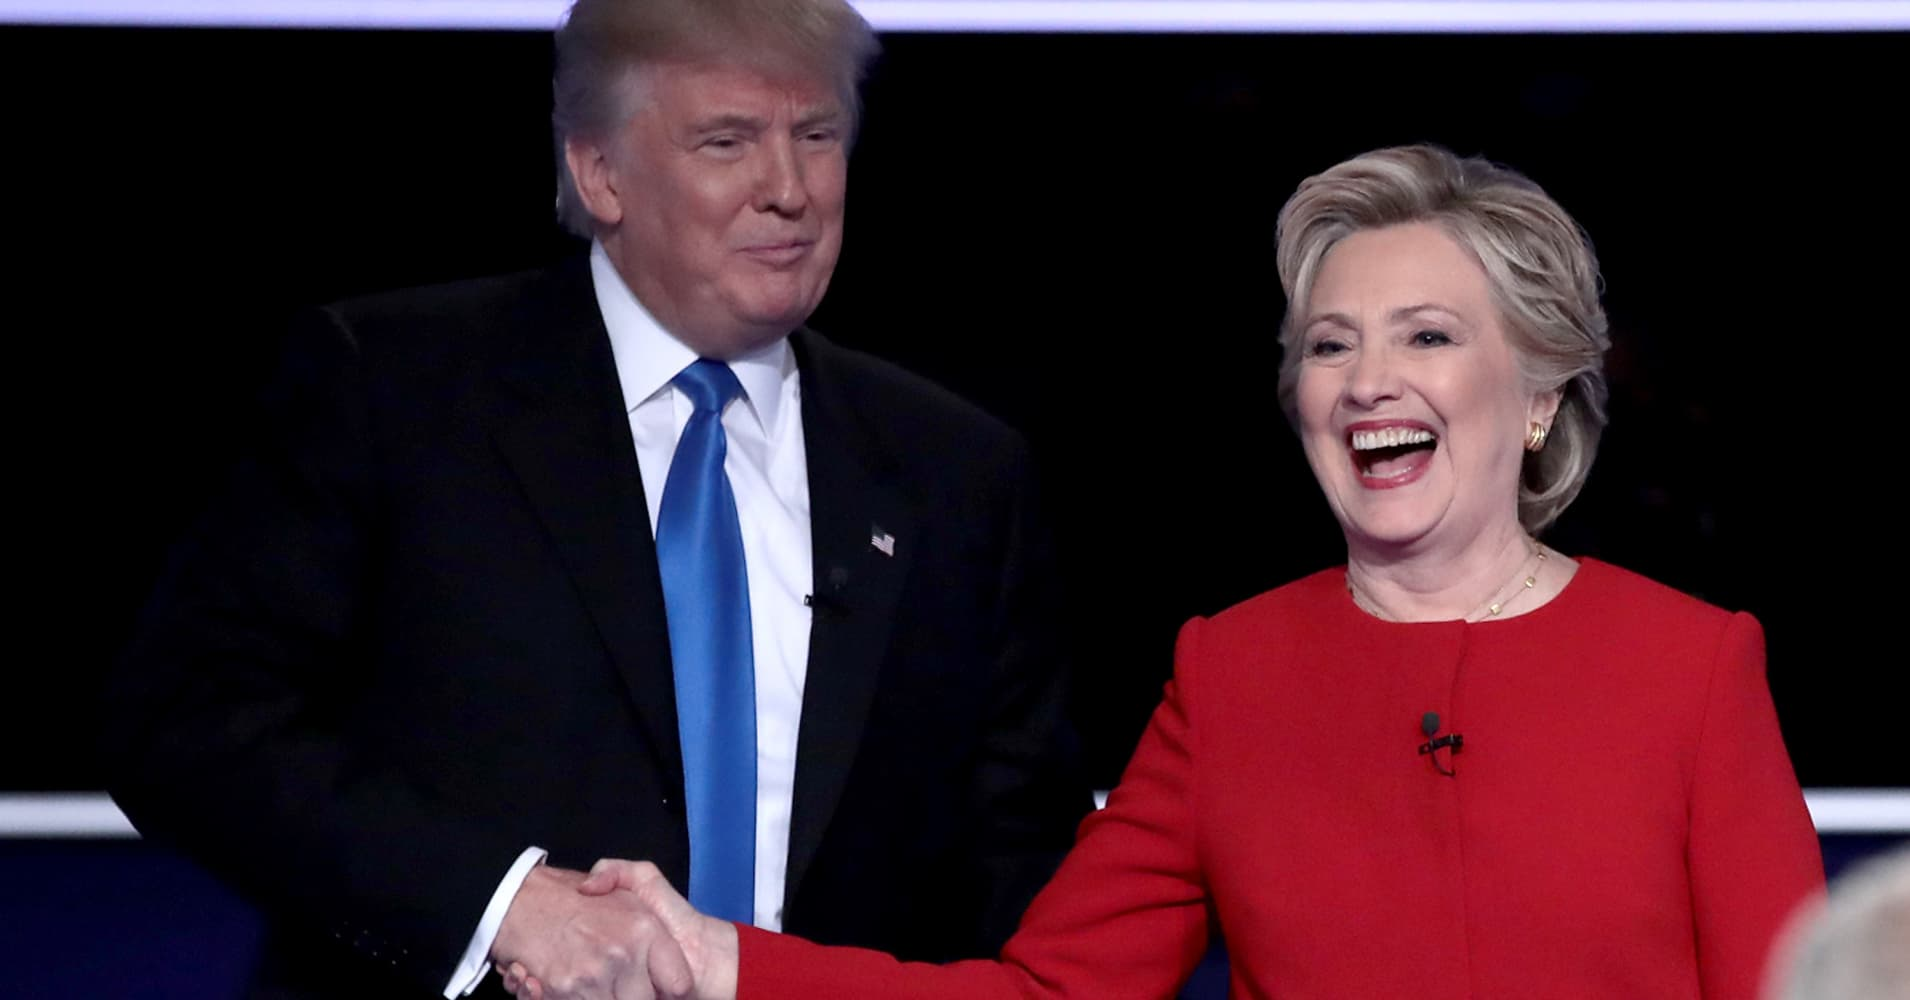 Republican presidential nominee Donald Trump and Democratic presidential nominee Hillary Clinton shake hands after the Presidential Debate at Hofstra University on September 26, 2016 in Hempstead, New York.